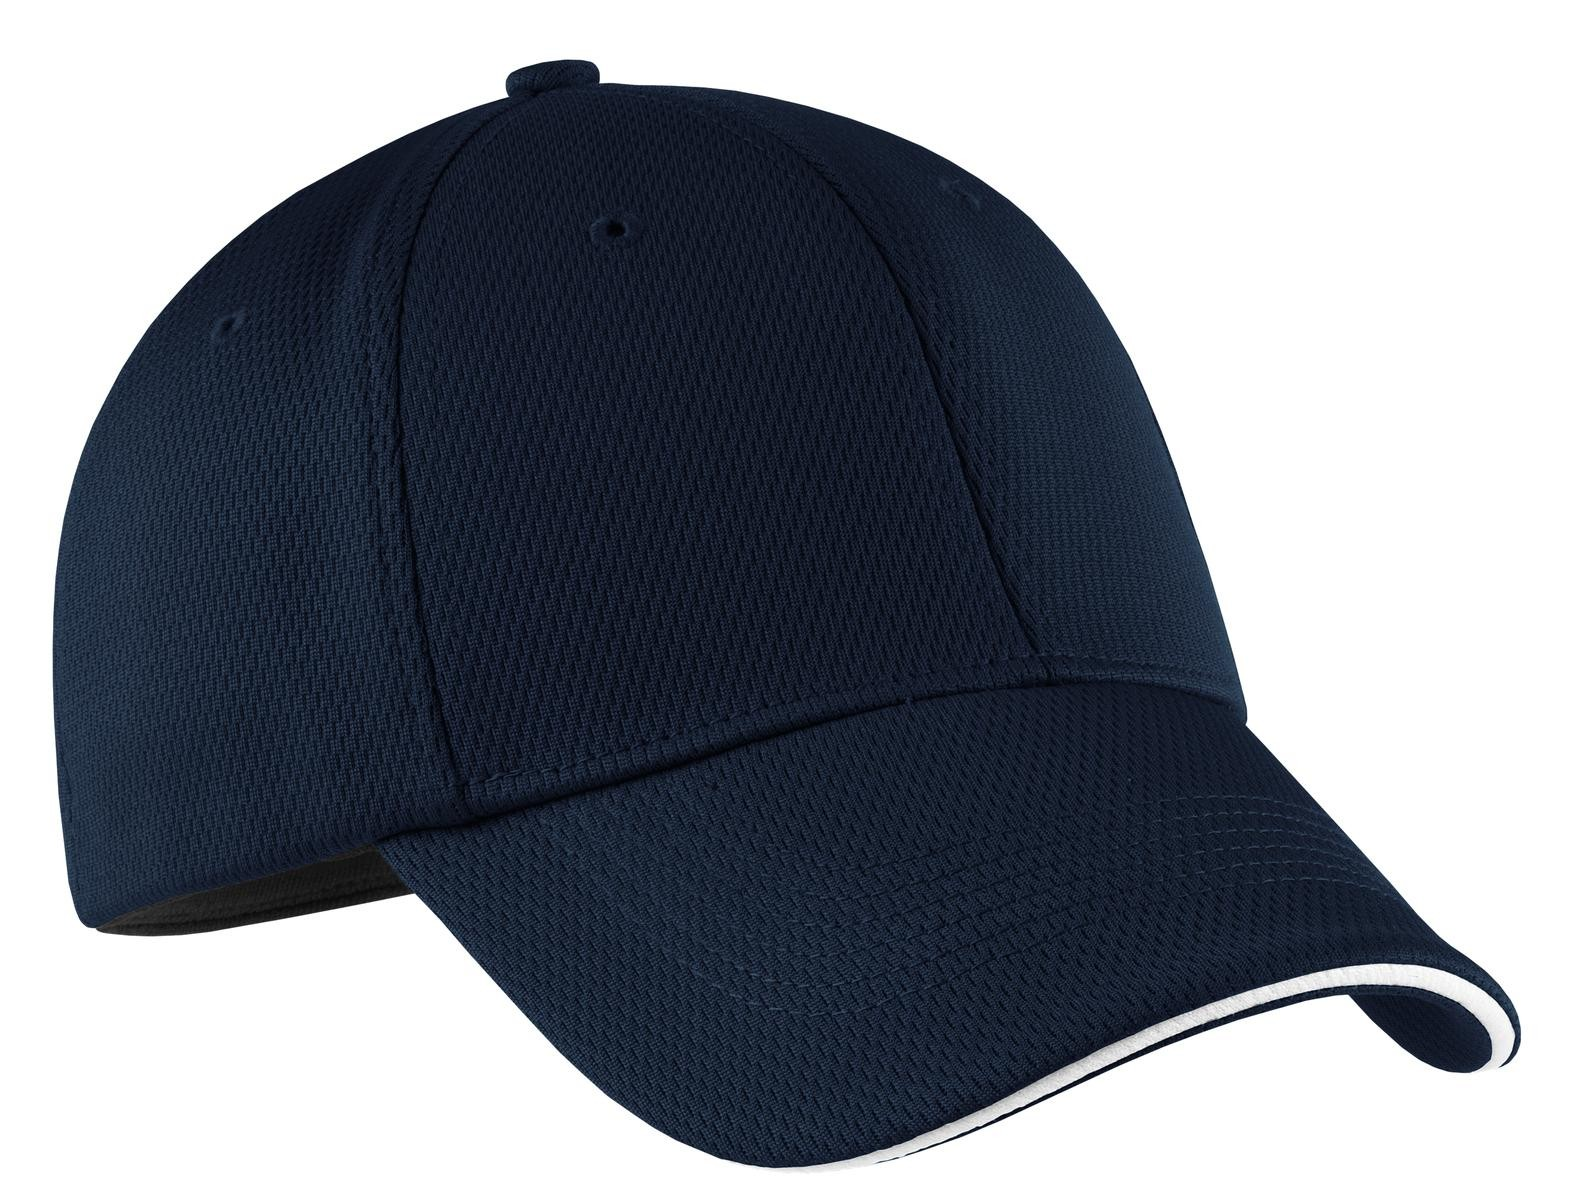 6b728faf589 Nike Golf - Dri-FIT Mesh Swoosh Flex Sandwich Cap. SKU   H268. Be the first  to review this product